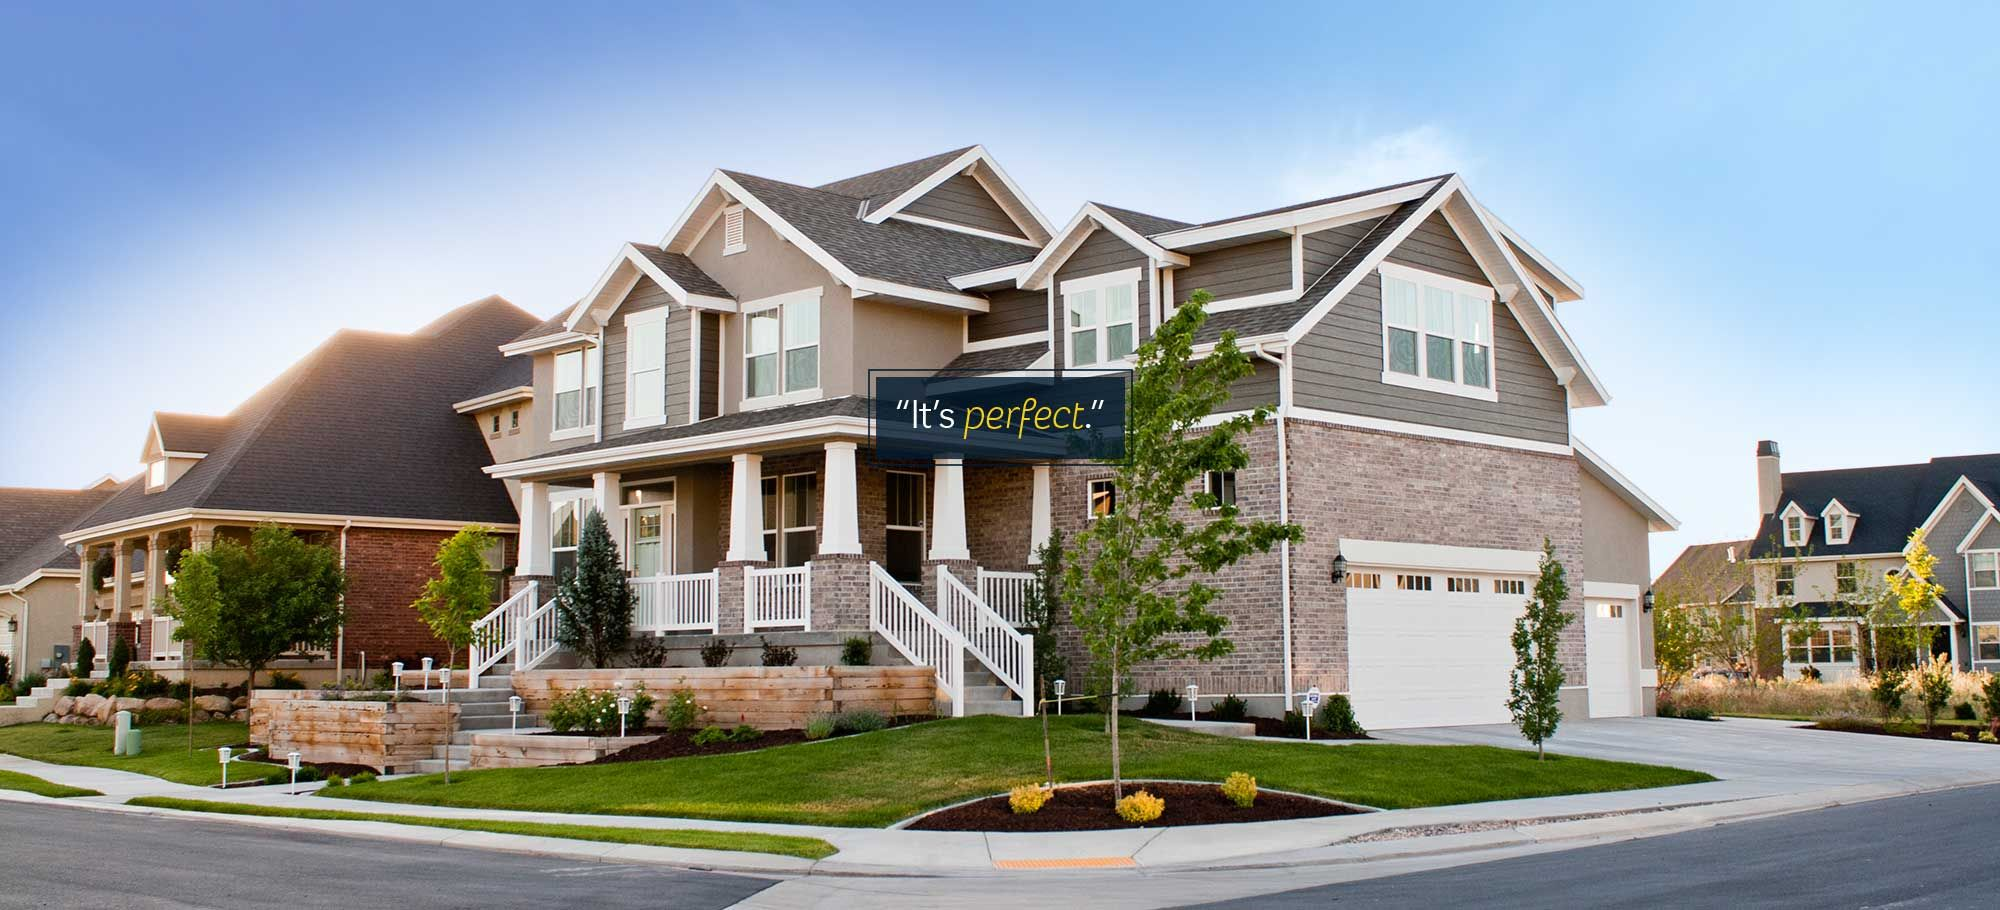 Summit Construction Builds Beautiful Custom Homes In Utah We Provide Exceptional Value In Each Custom H Utah Home Builders New Homes For Sale Building A House